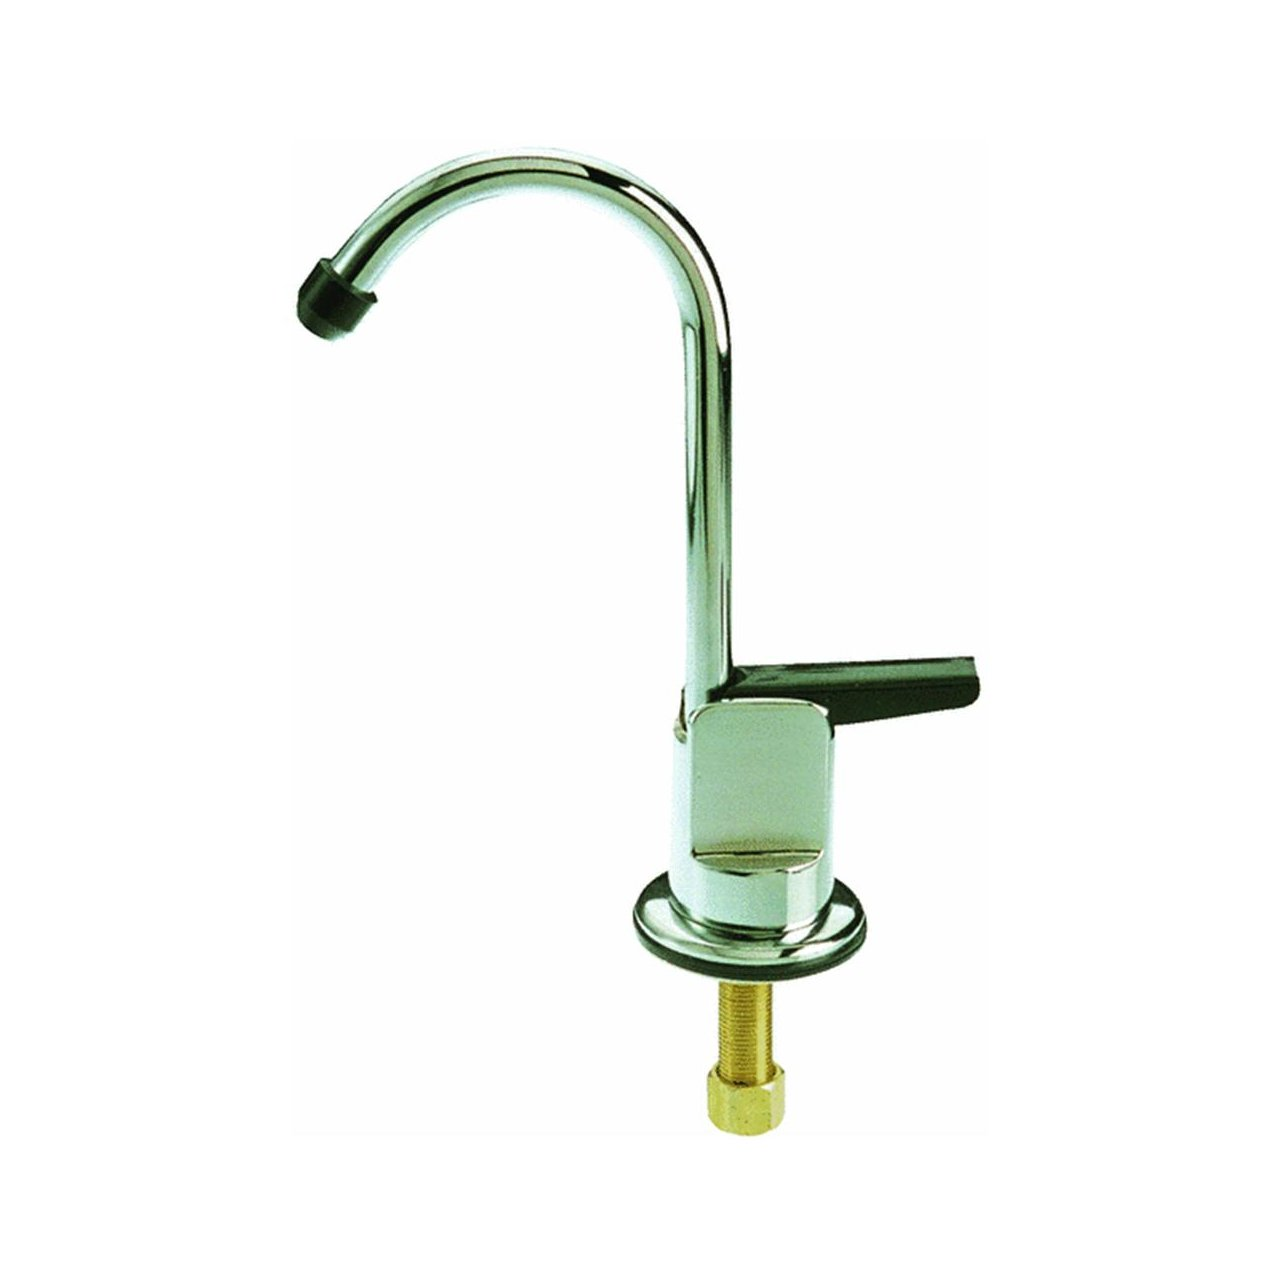 durable service drinking water faucet thai